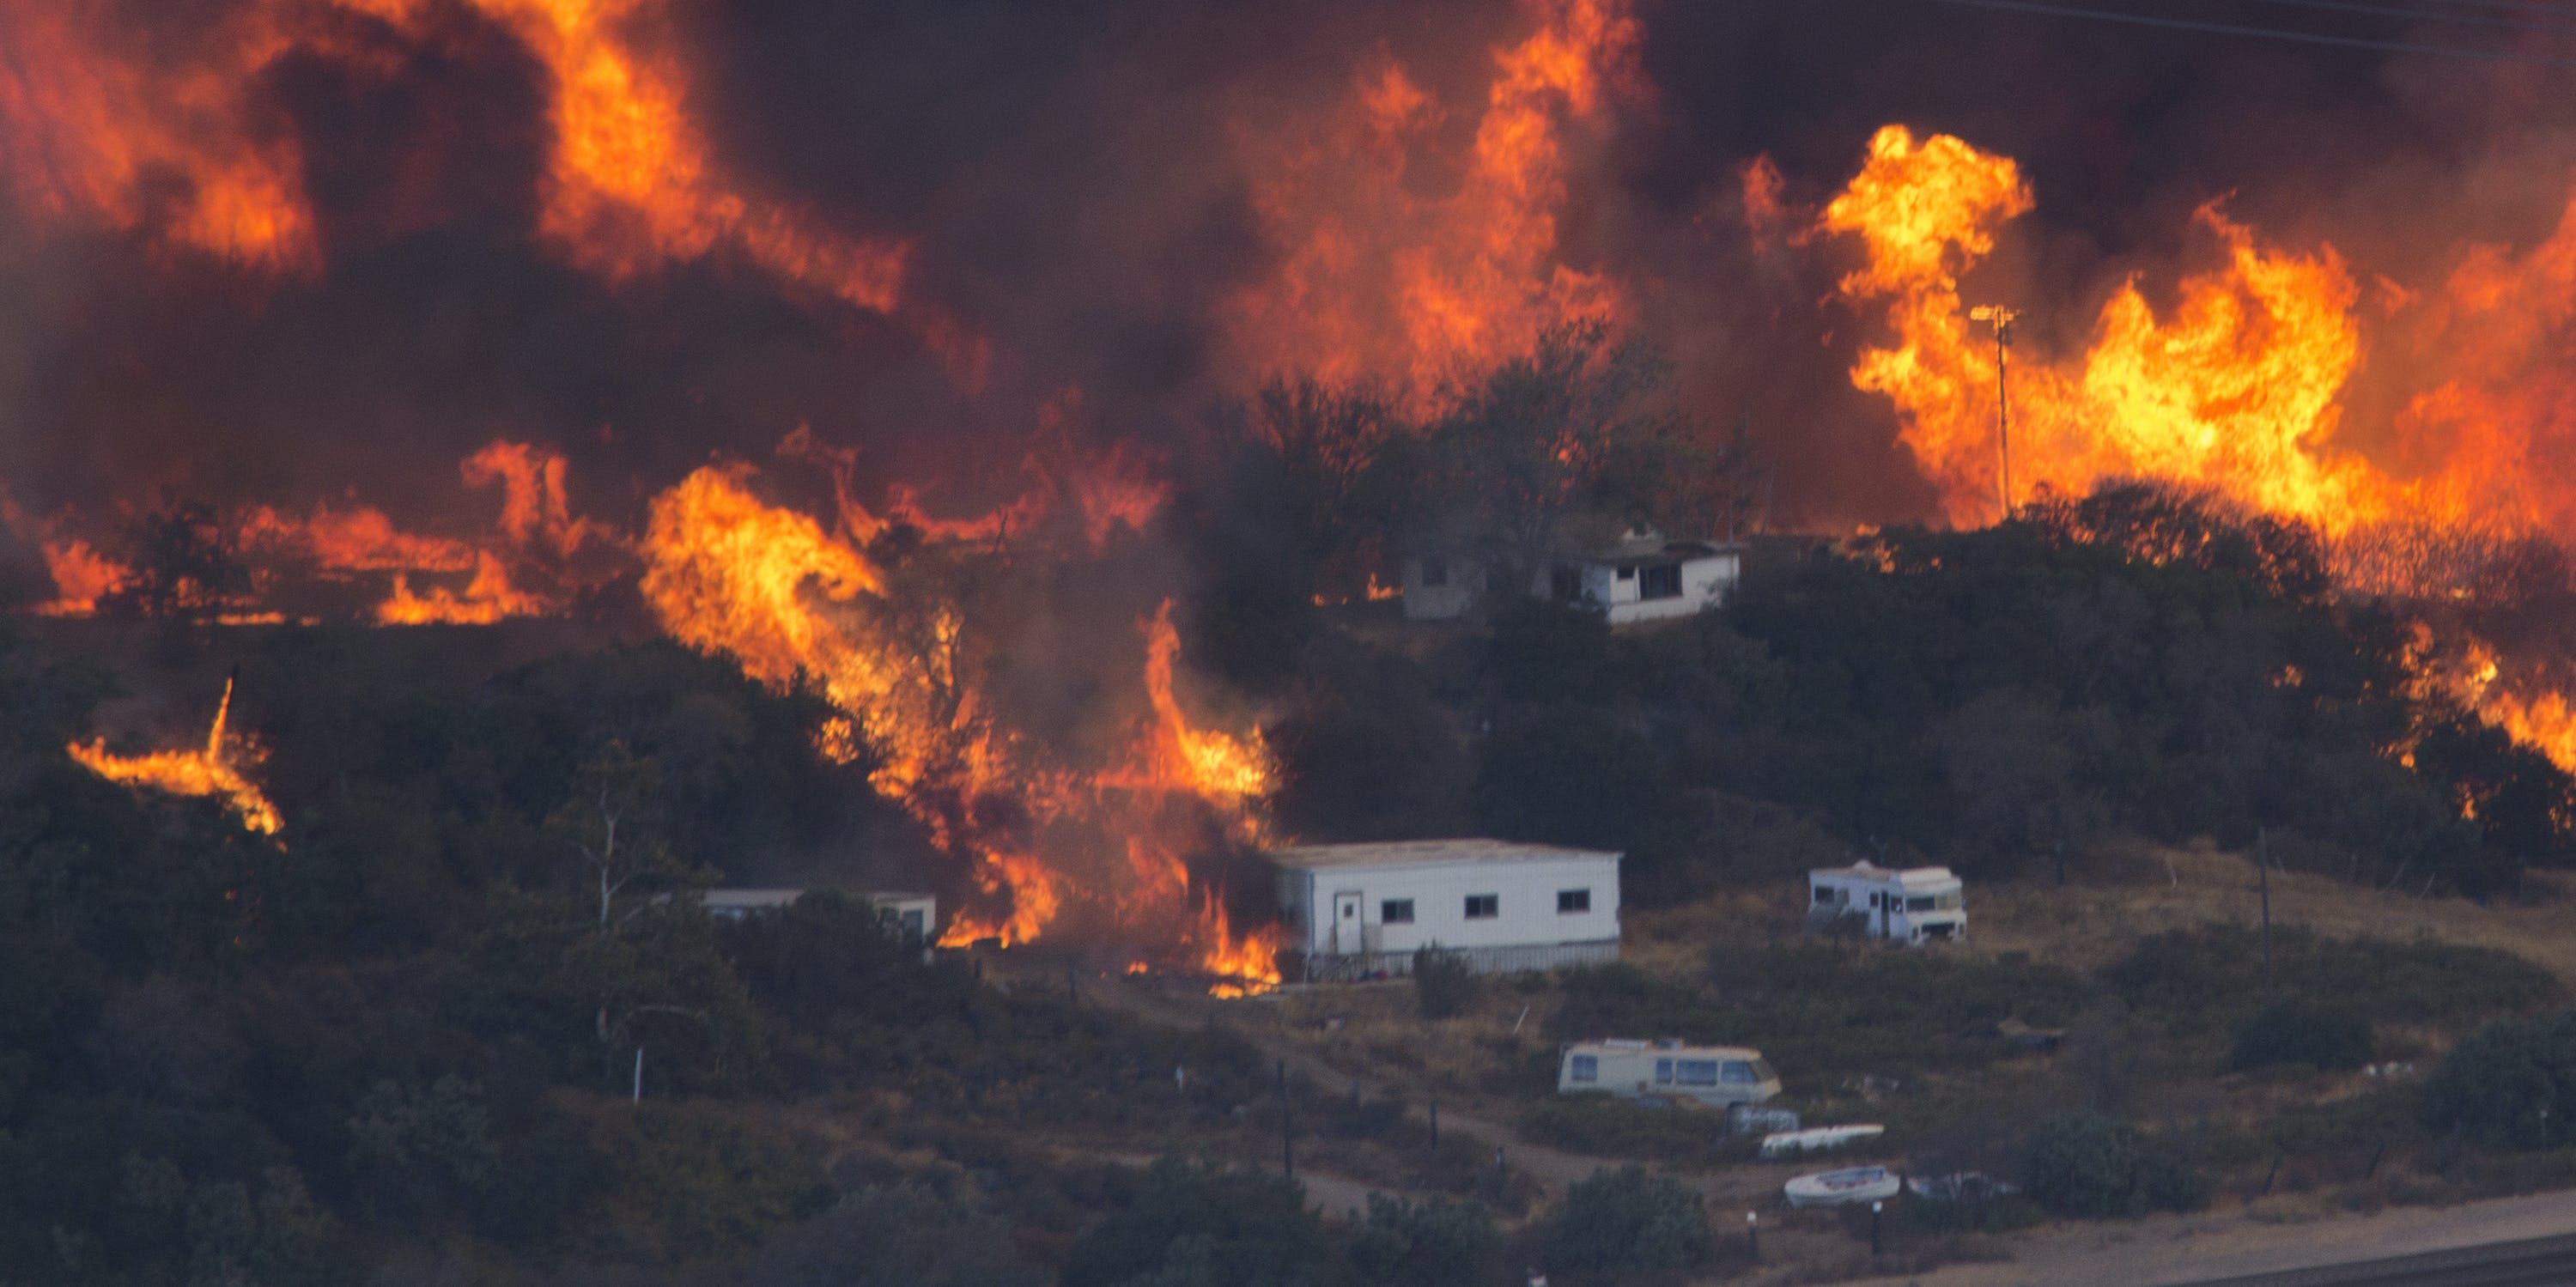 Flames sweep through a rural community at the Blue Cut Fire on August 17, 2016 near Wrightwood, California.. An unknown number of homes and businesses have burned and more than 80,000 people are under evacuation orders as the out-of-control wildfire spread beyond 30,000 acres and threatens to expand into the ski resort town of Wrightwood.